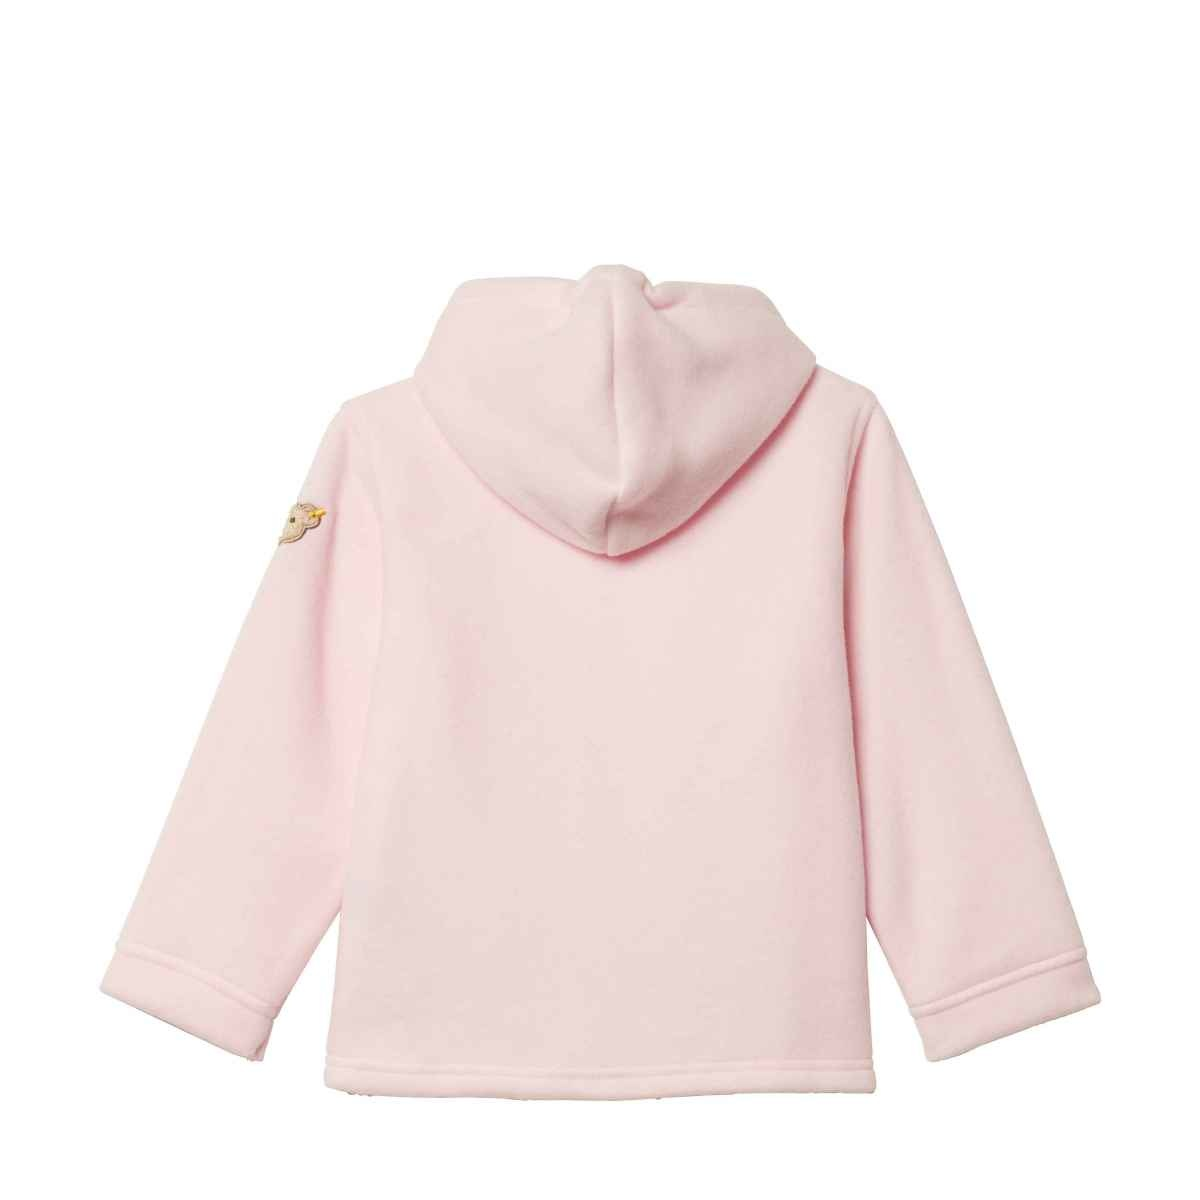 Steiff Steiff Pink Fleece zipper Jacket